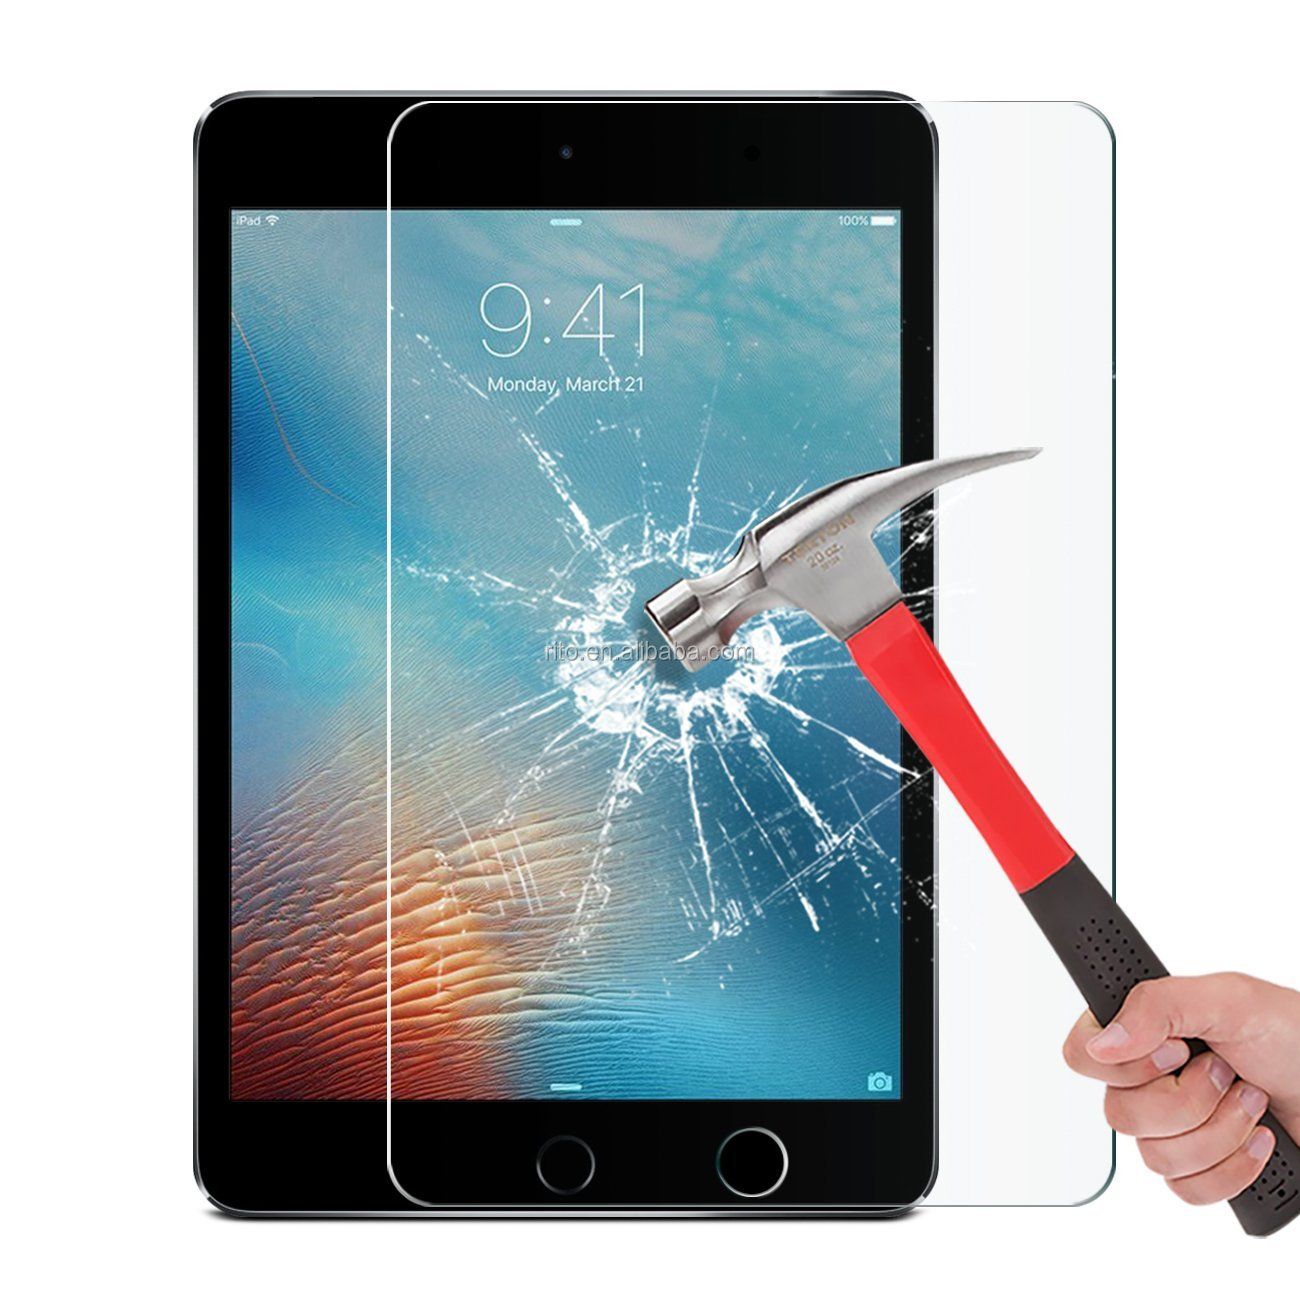 Tempered Glass Screen Protector for iPad Mini / iPad Mini 2 / iPad Mini 3, Anti-Scratch